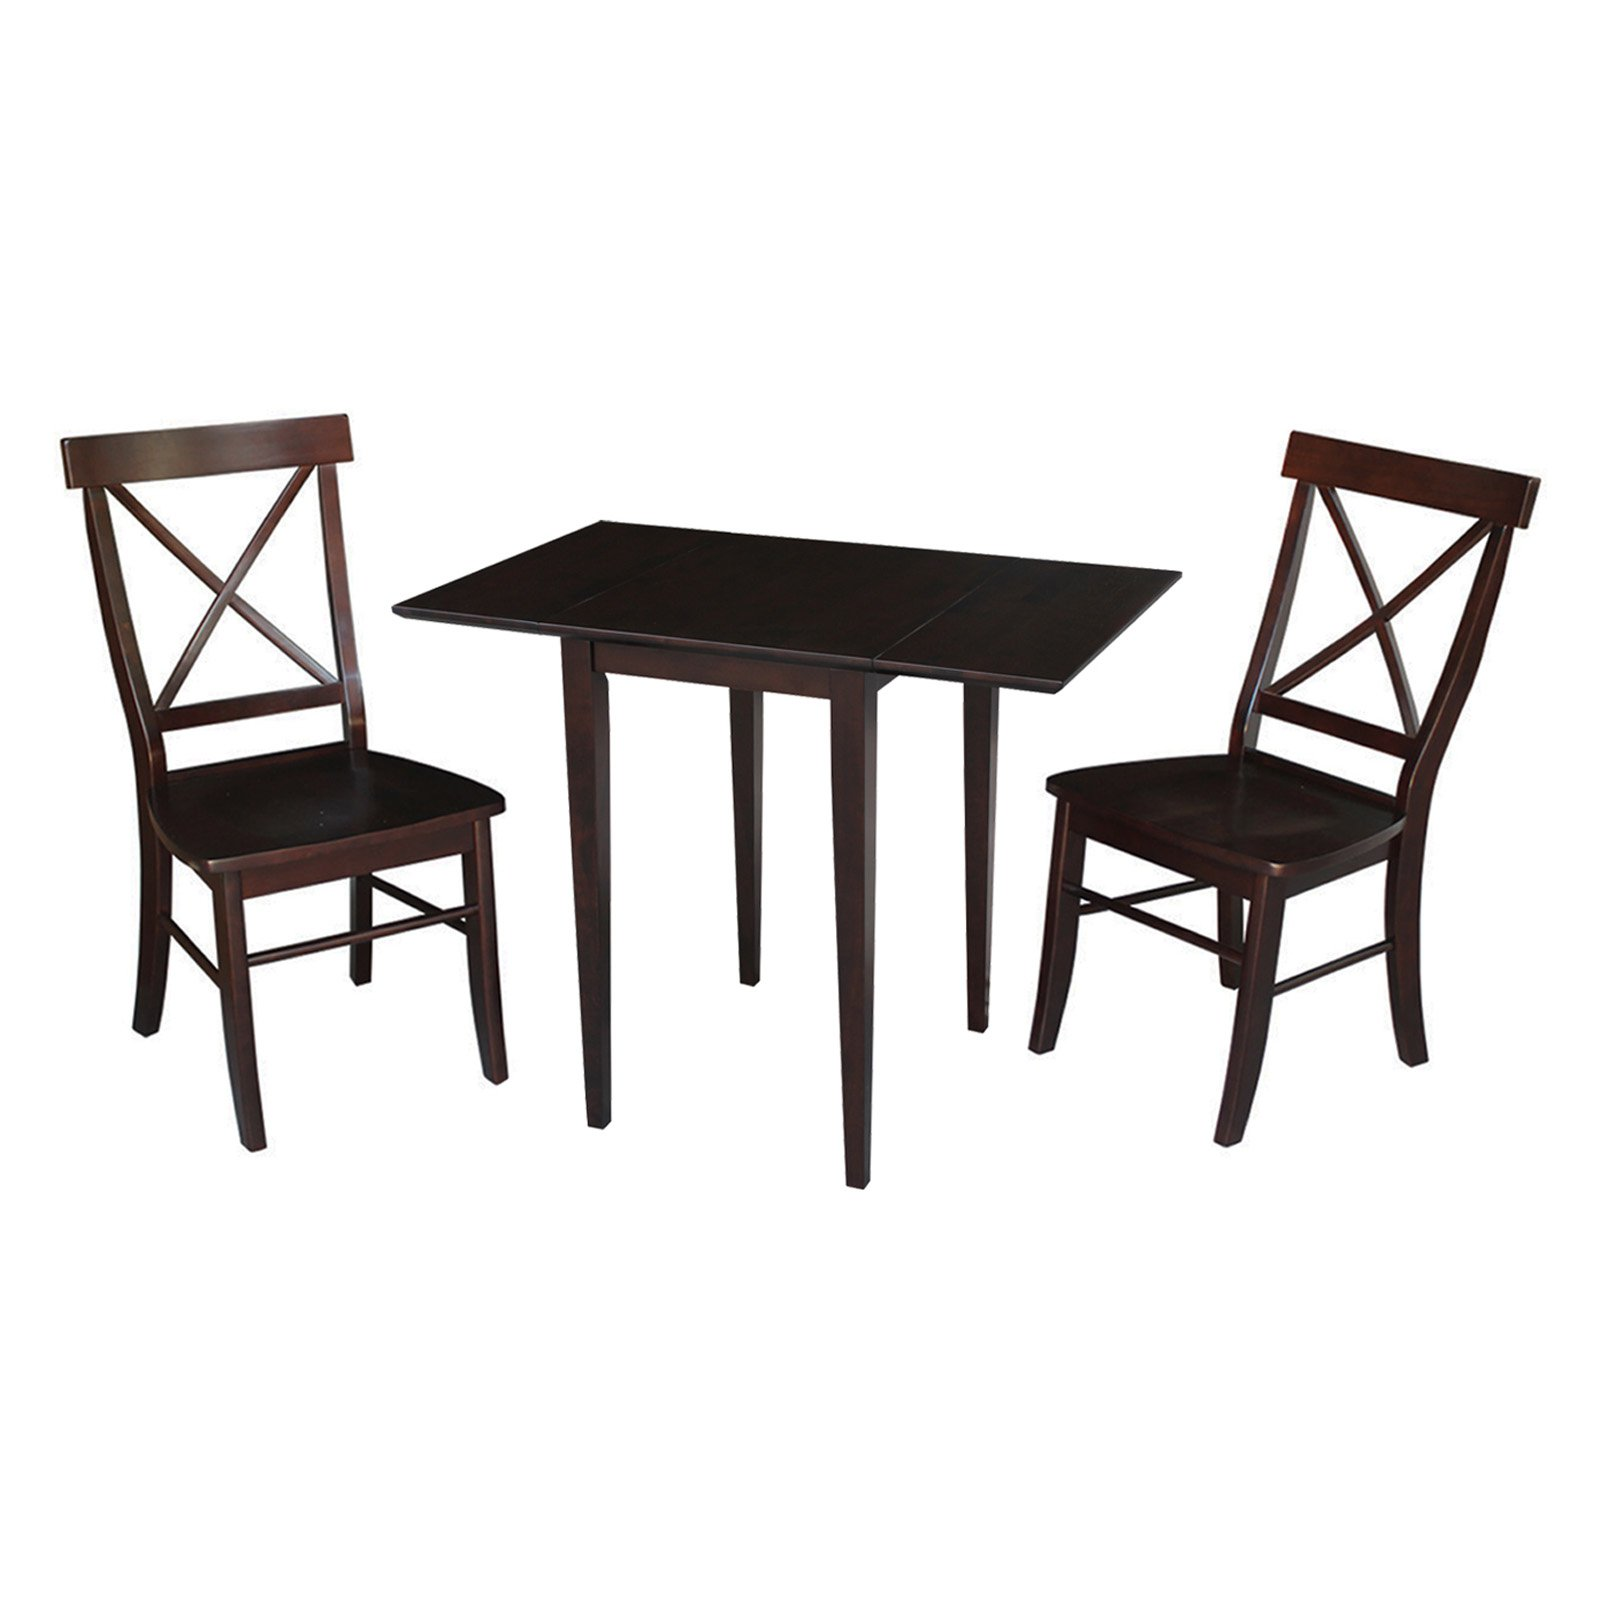 Small Dual Drop Leaf Table and 2 X-back Chairs in Rich Mocha - Set of 3